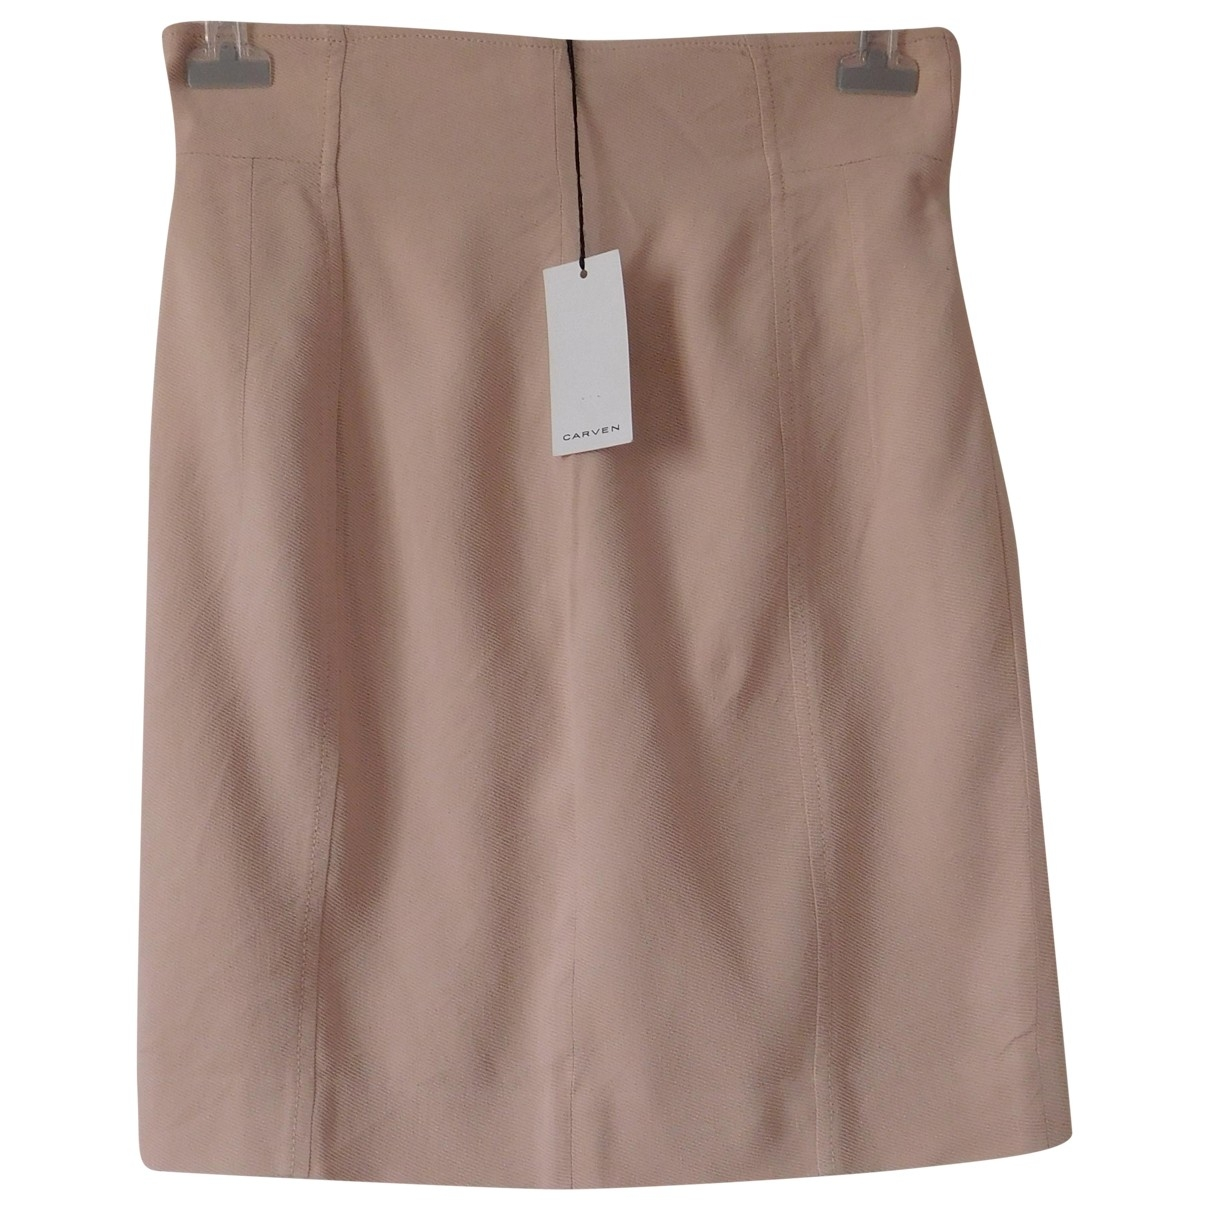 Carven \N Pink Linen skirt for Women 40 FR